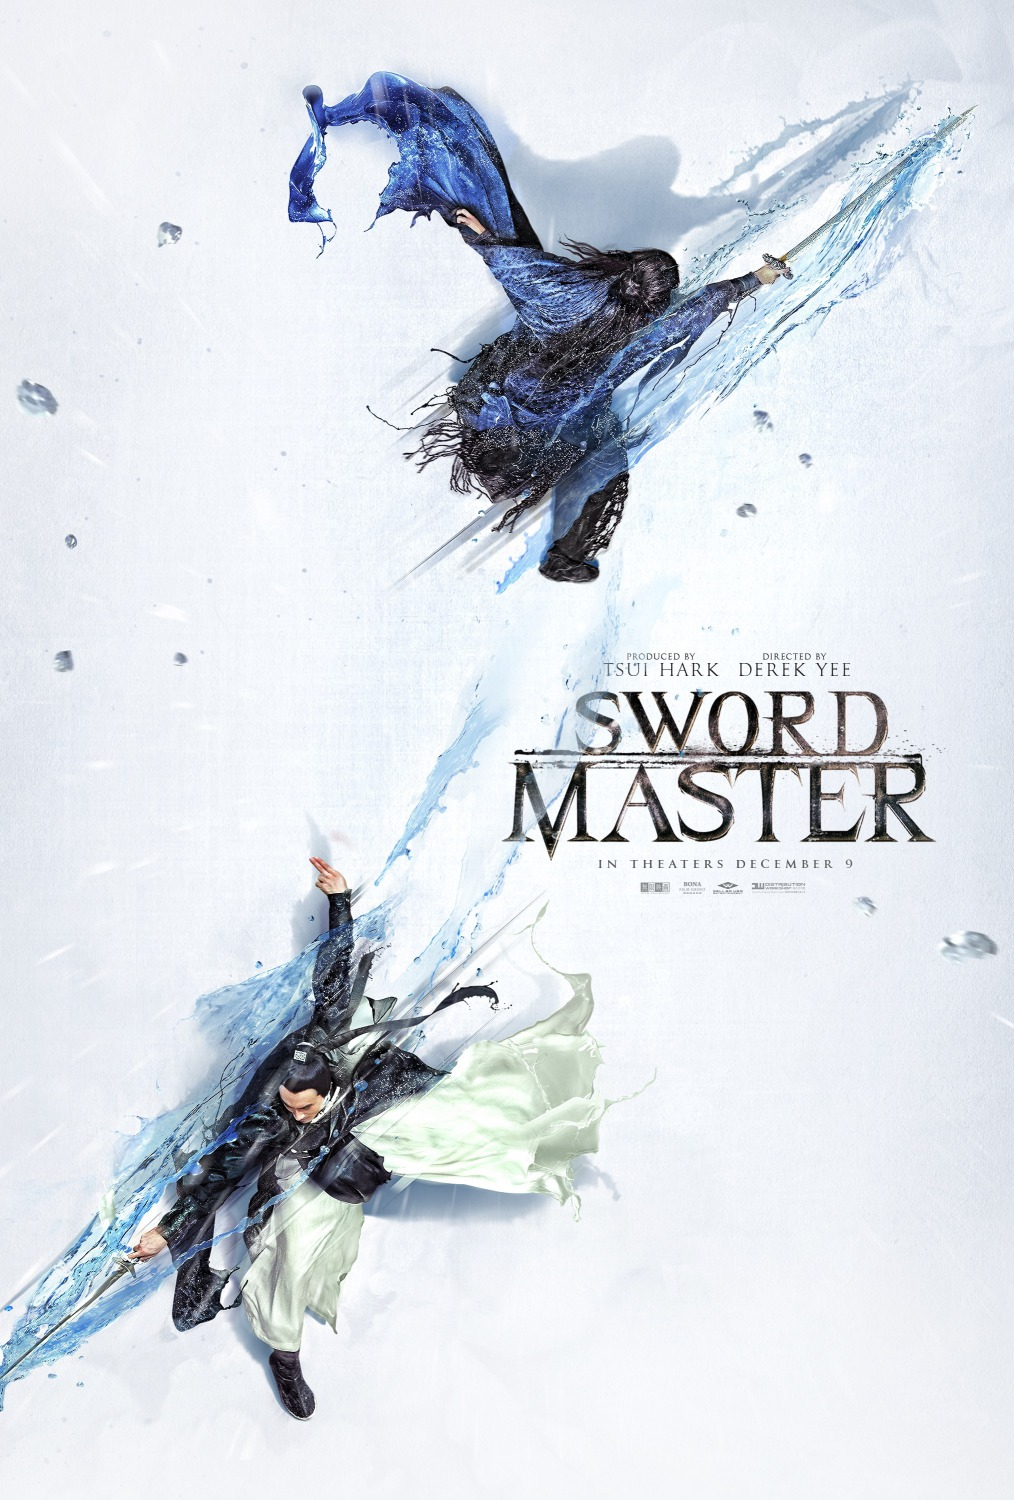 Master 2016 Sword Master Aka San Shao Ye De Jian Movie Poster 2 Of 11